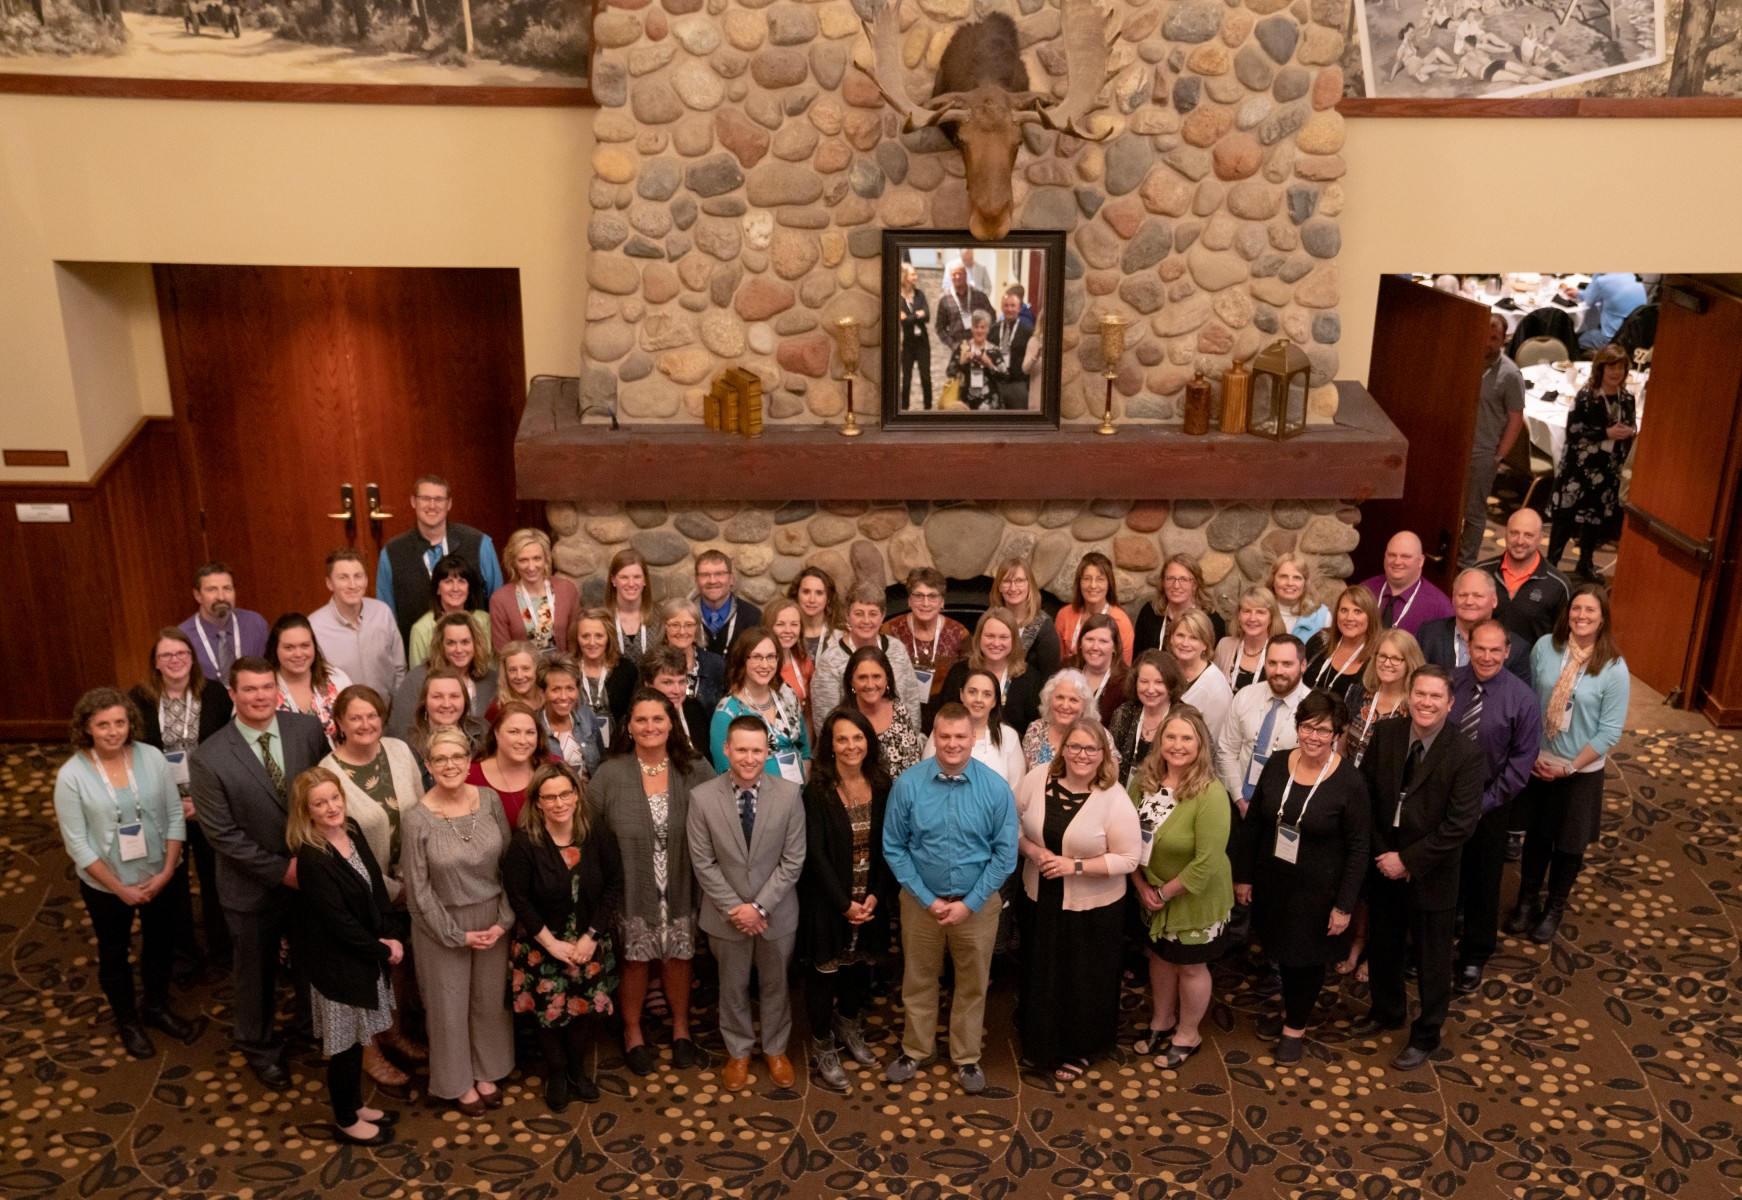 Fifty-nine educators from Region 5 were celebrated at the 2019 Educators of Excellence Event on May 8 at Grand View Lodge in Nisswa.